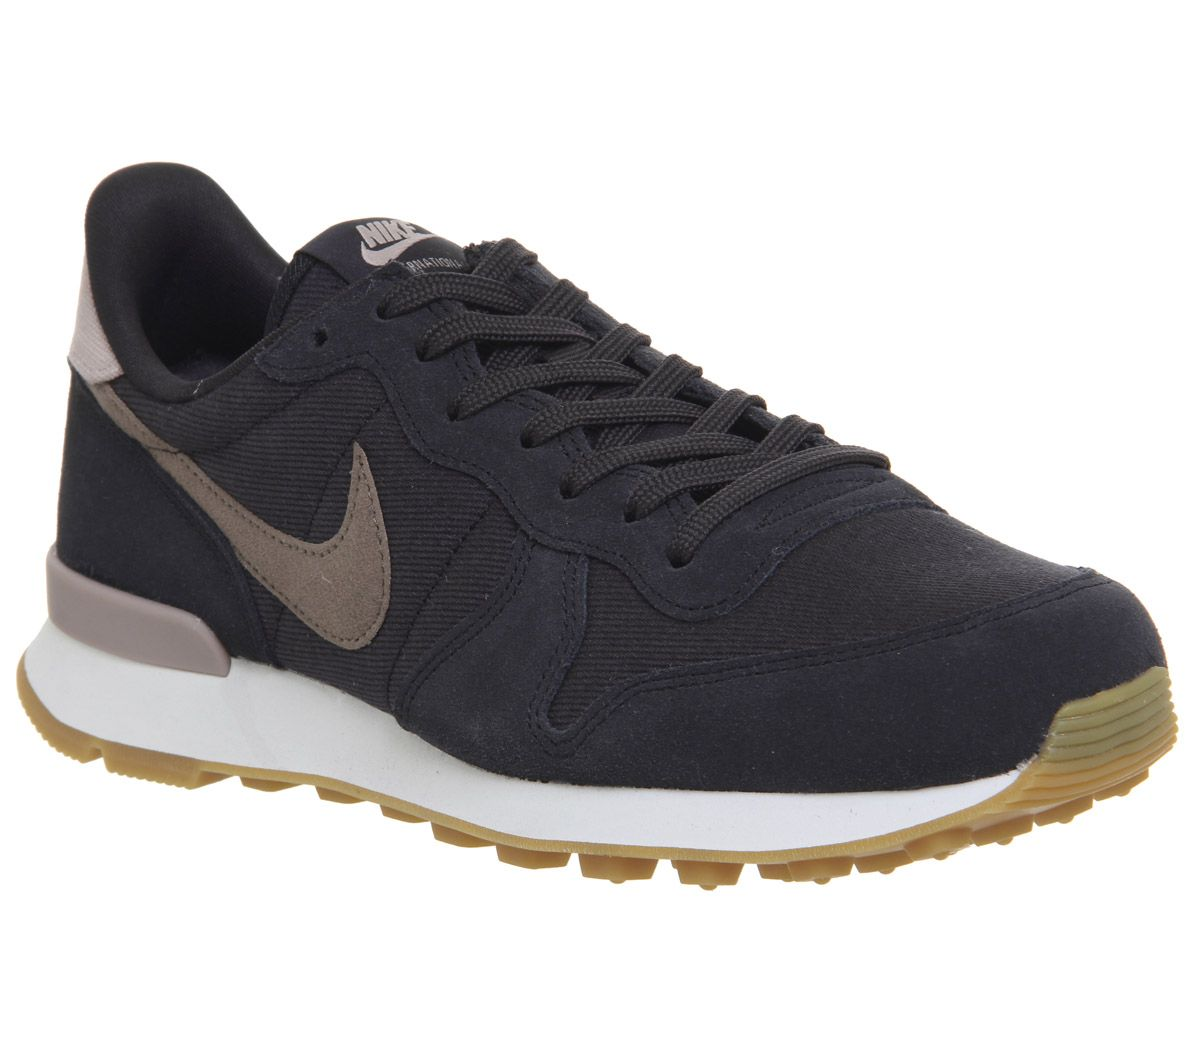 timeless design e7889 6bdc1 Nike Nike Internationalist Trainers Oil Grey Miuk Brown F - Hers ...